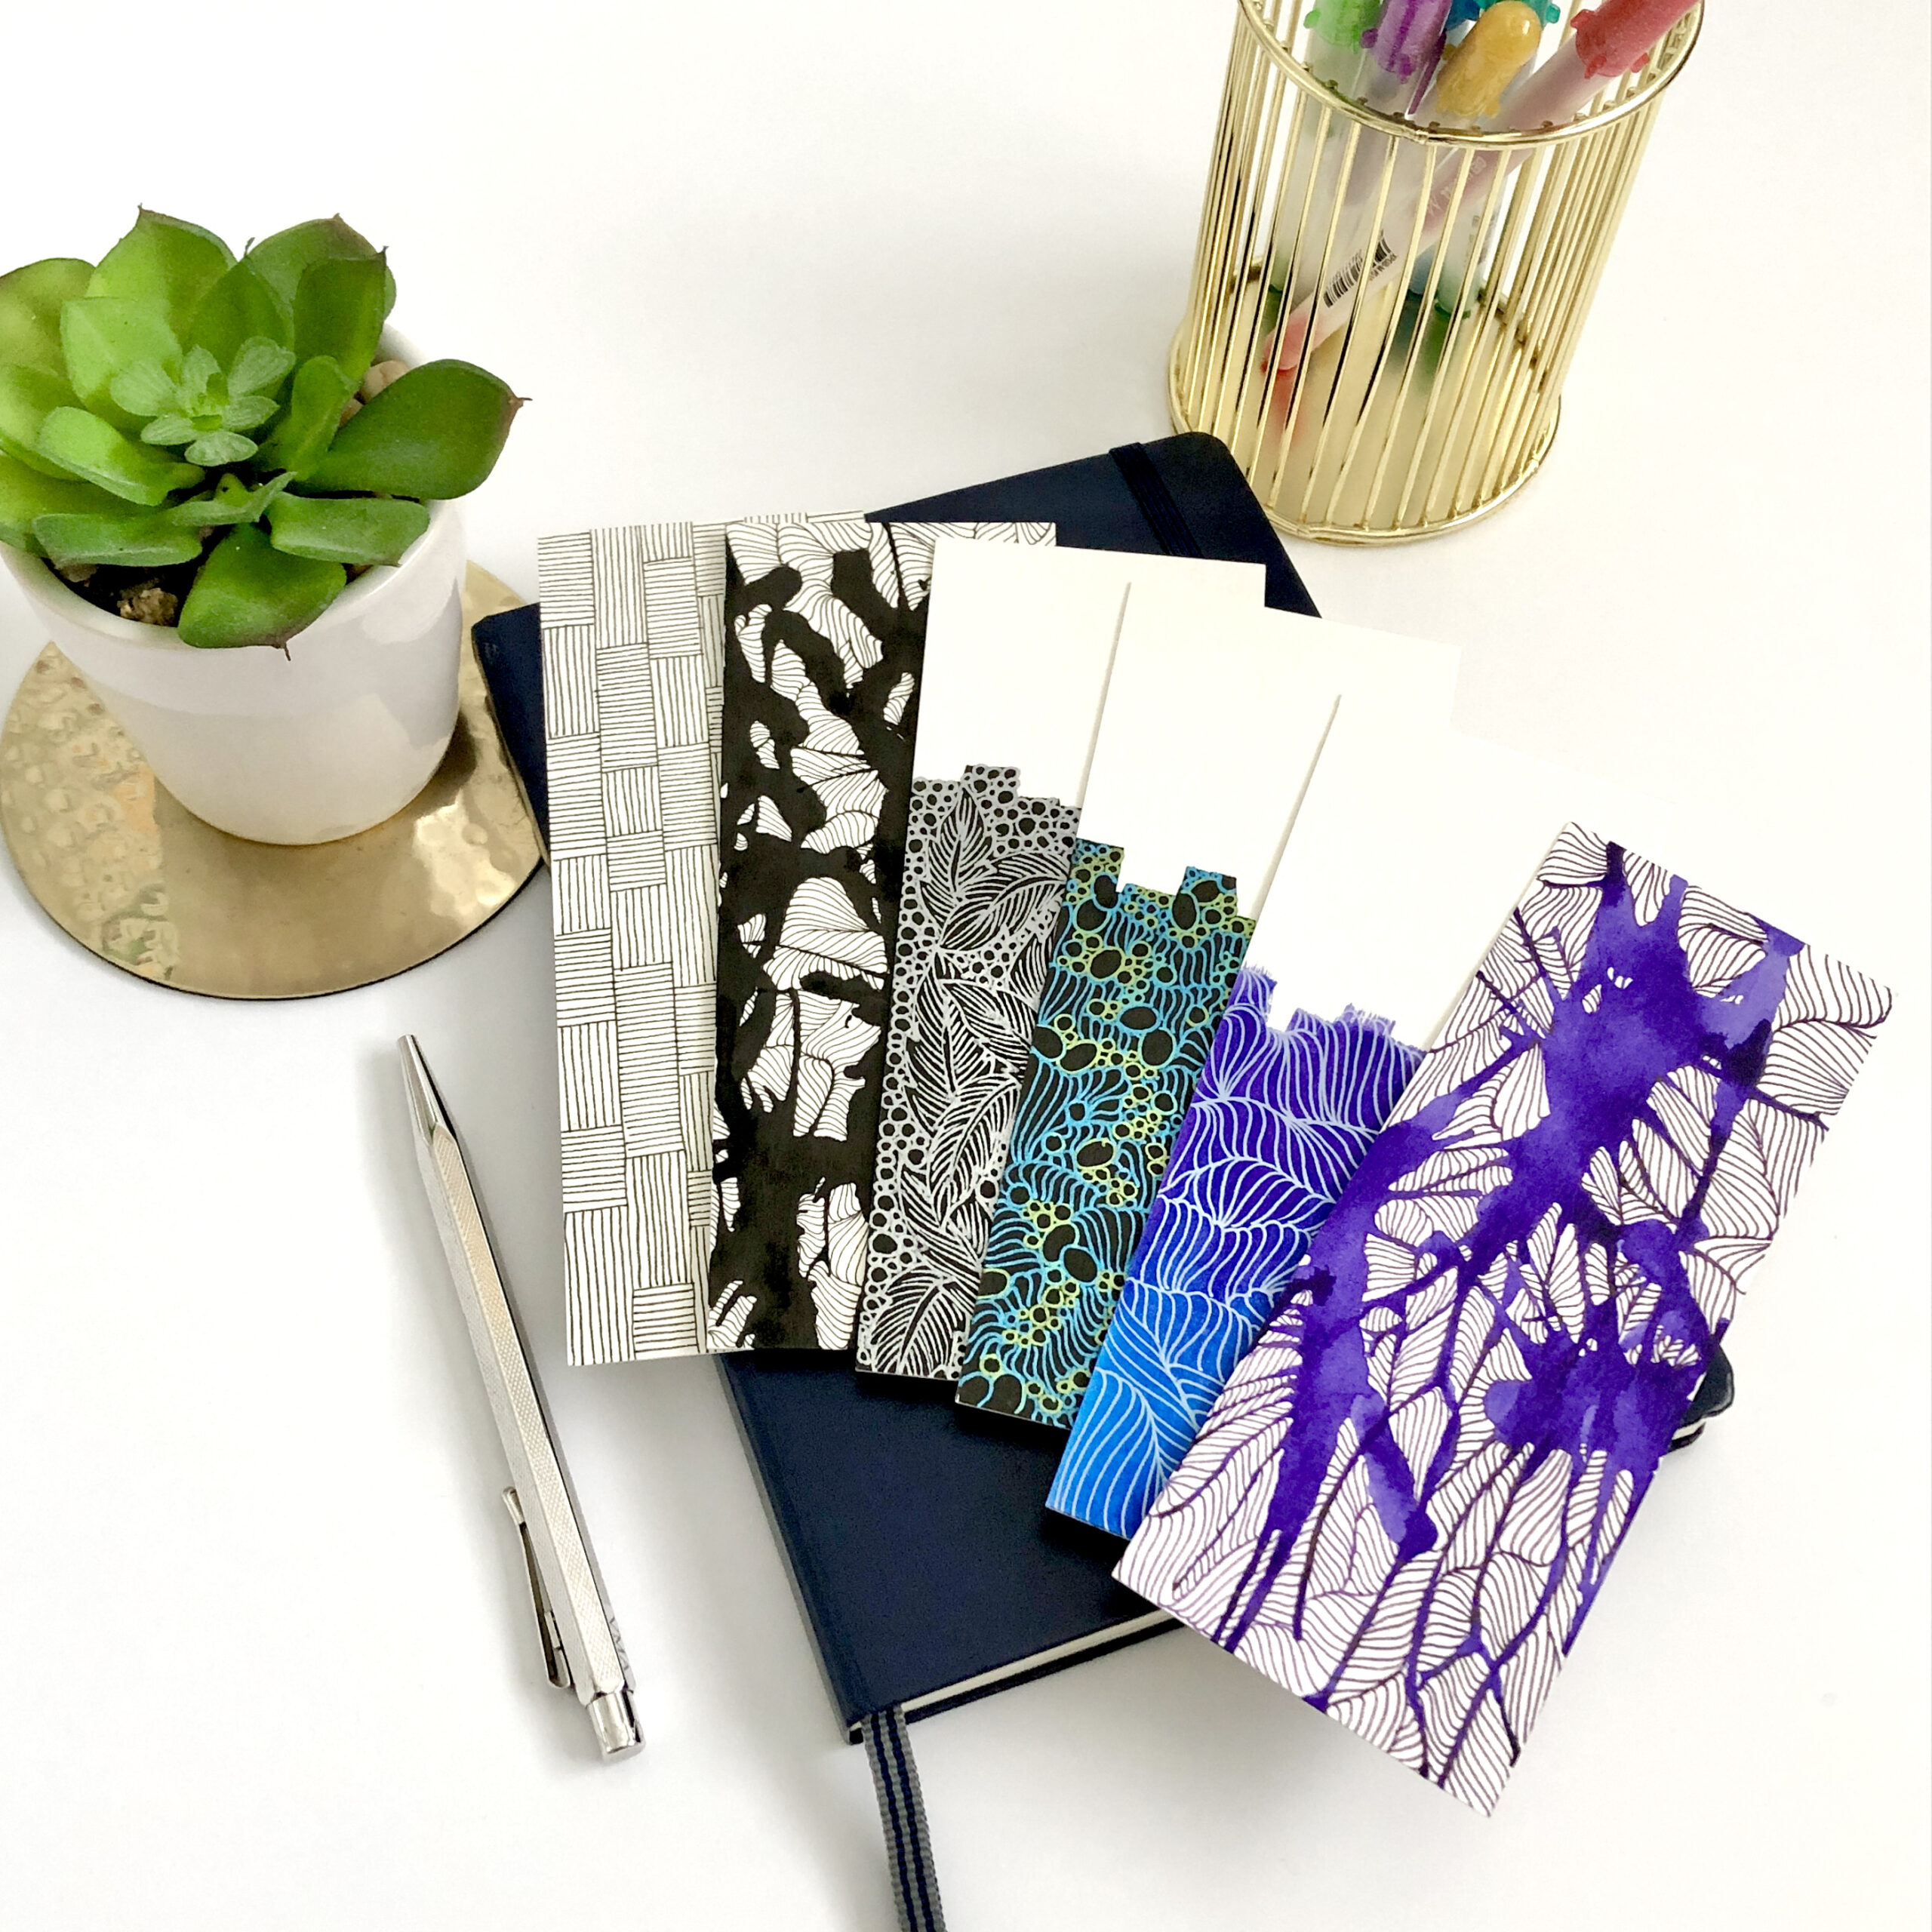 Set of handmade abstract bookmarks made by Maria Atton or Le Cheval Fou - Gift for book lover